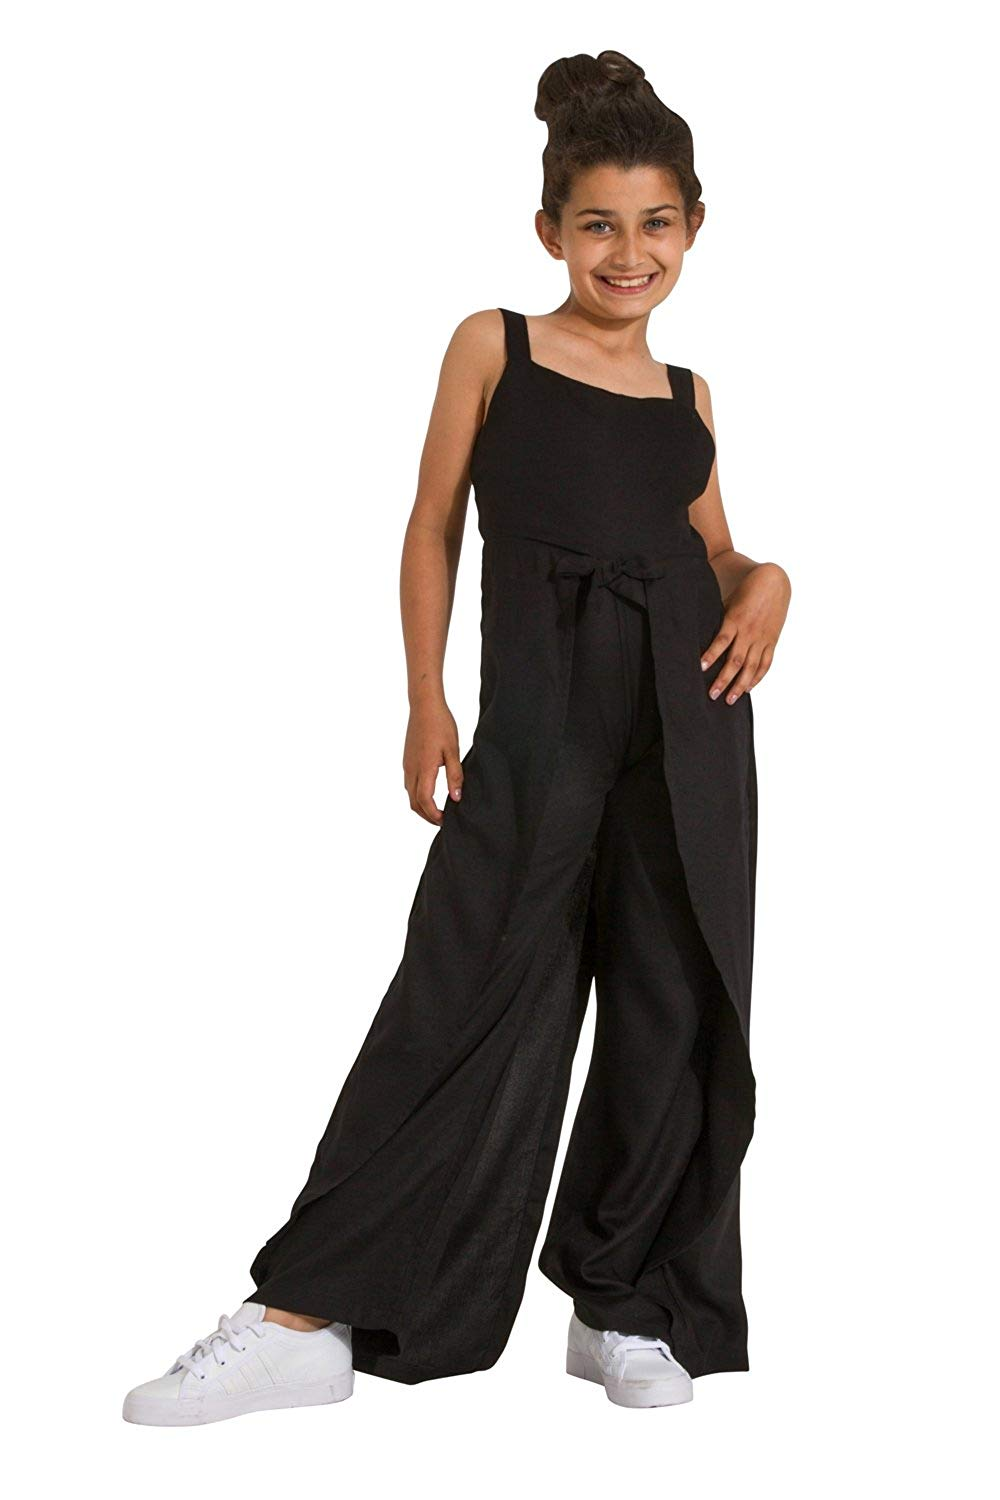 44135fdbf244 Get Quotations · Wash Clothing Company Wide Leg Jumpsuit for Girls - Black  Sleeveless Culotte Dress Age 3-